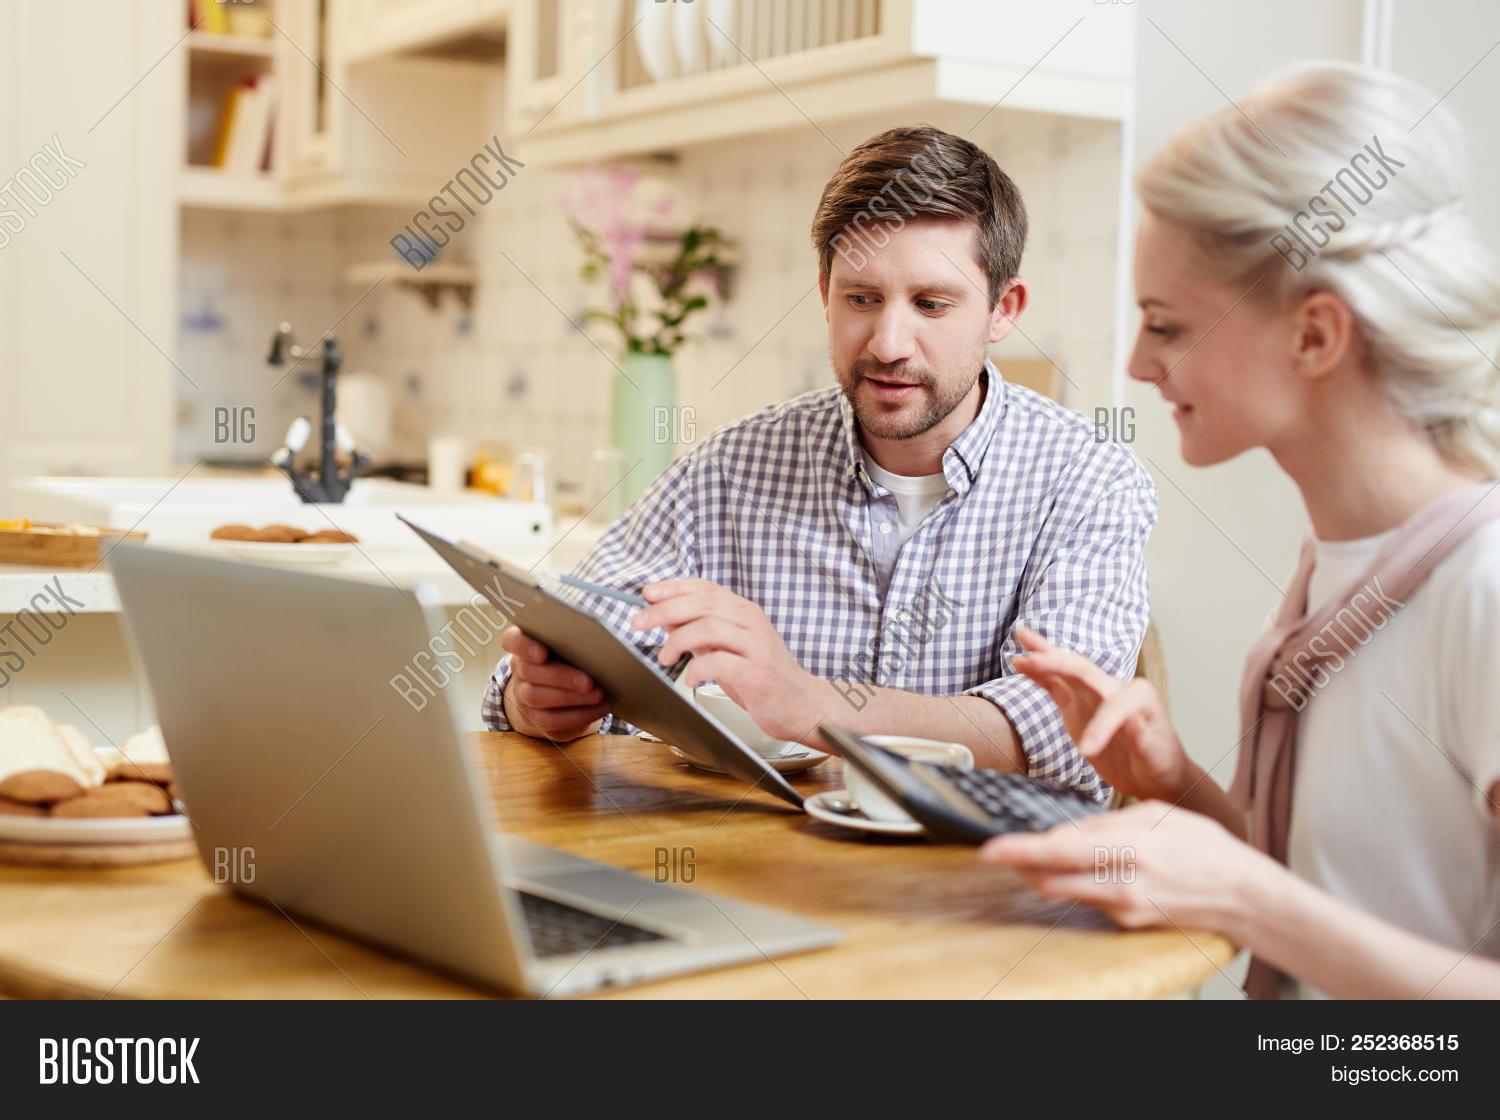 accounting,adult,banking,bill,budget,calculating,communication,computer,content,couple,discussing,domestic,examining,explaining,family,finance,home,kitchen,laptop,looking,man,paper,people,saving,showing,talking,tax,technology,woman,young